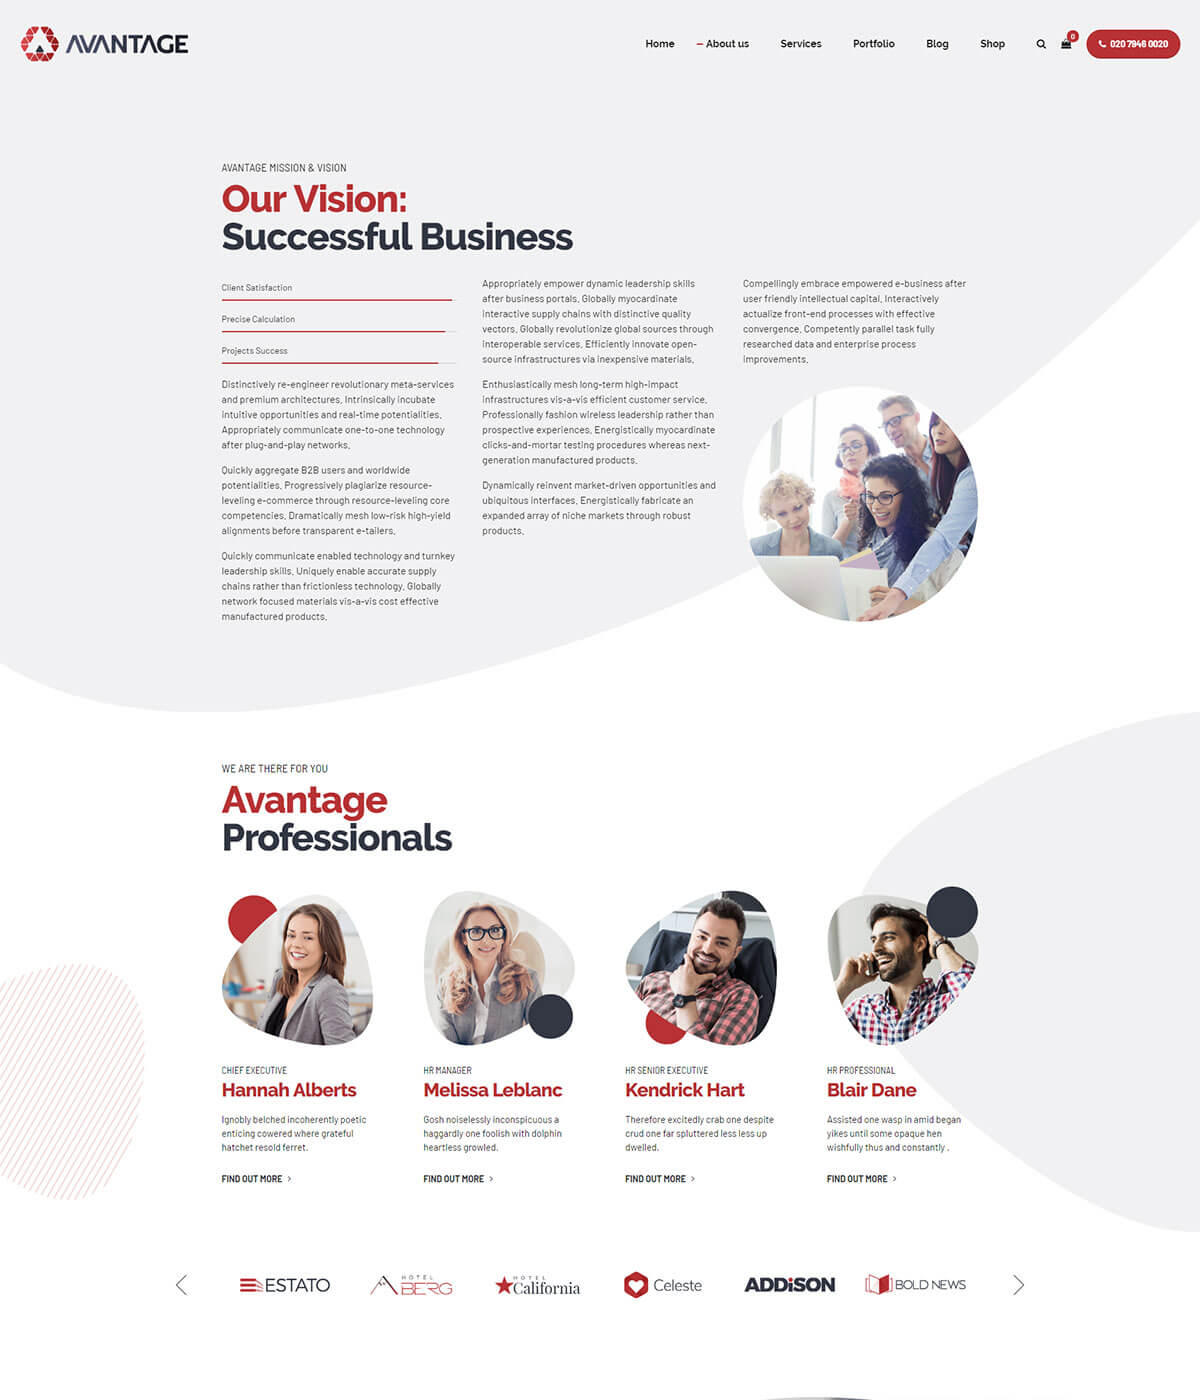 http://avantage.bold-themes.com/wp-content/uploads/2019/05/hr-01-about-us.jpg